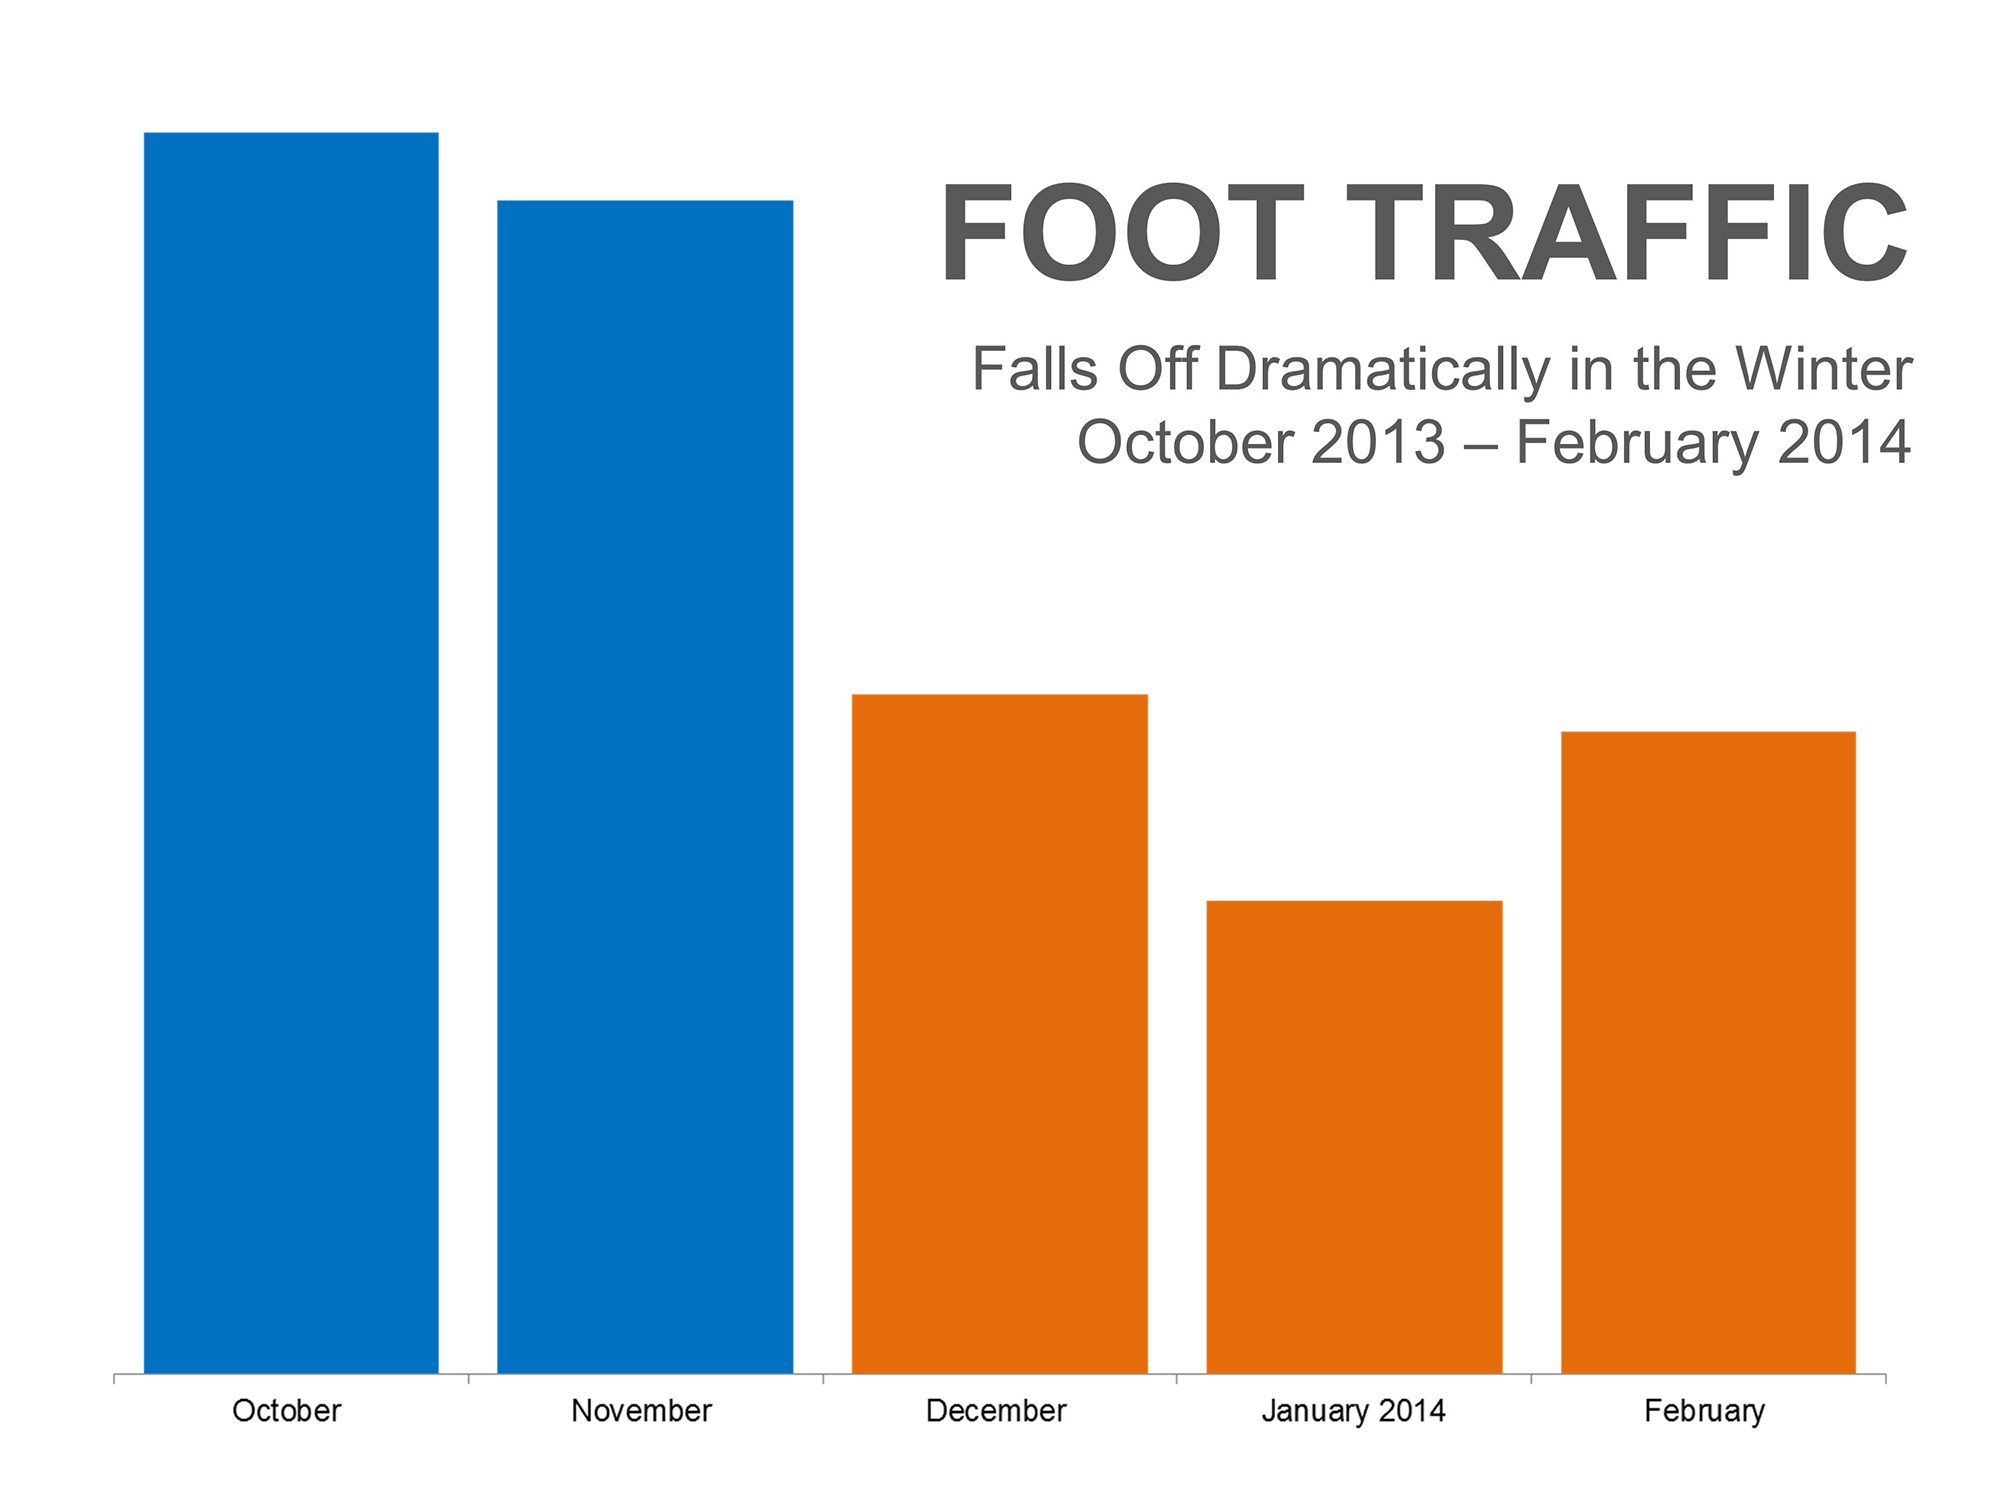 Foot Traffic To Decline in Winter Months | Simplifying The Market